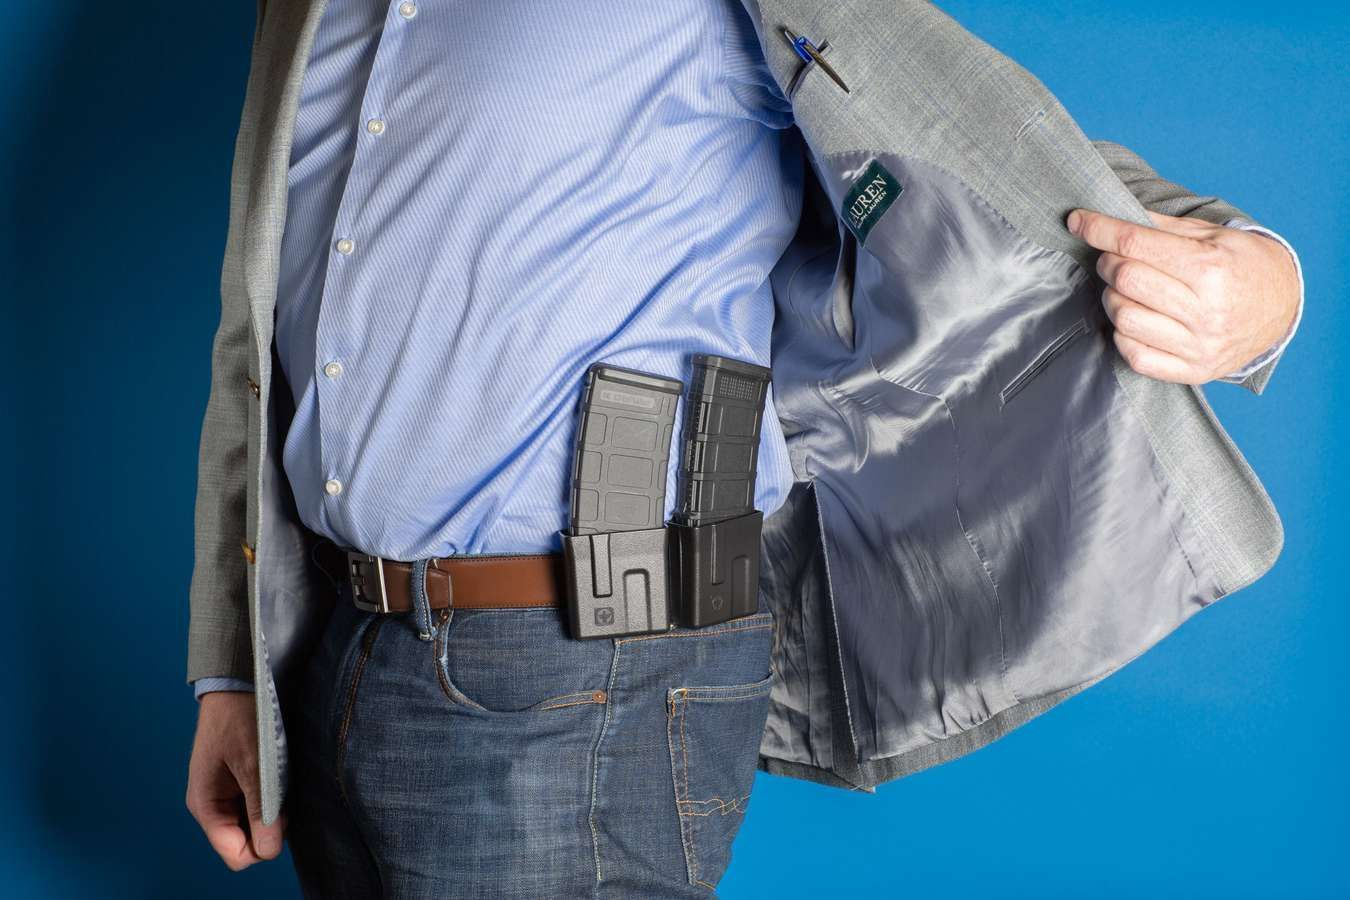 The Lictor carrier design is intended for low-profile/concealed employment, like PSD (personal security detail) work.